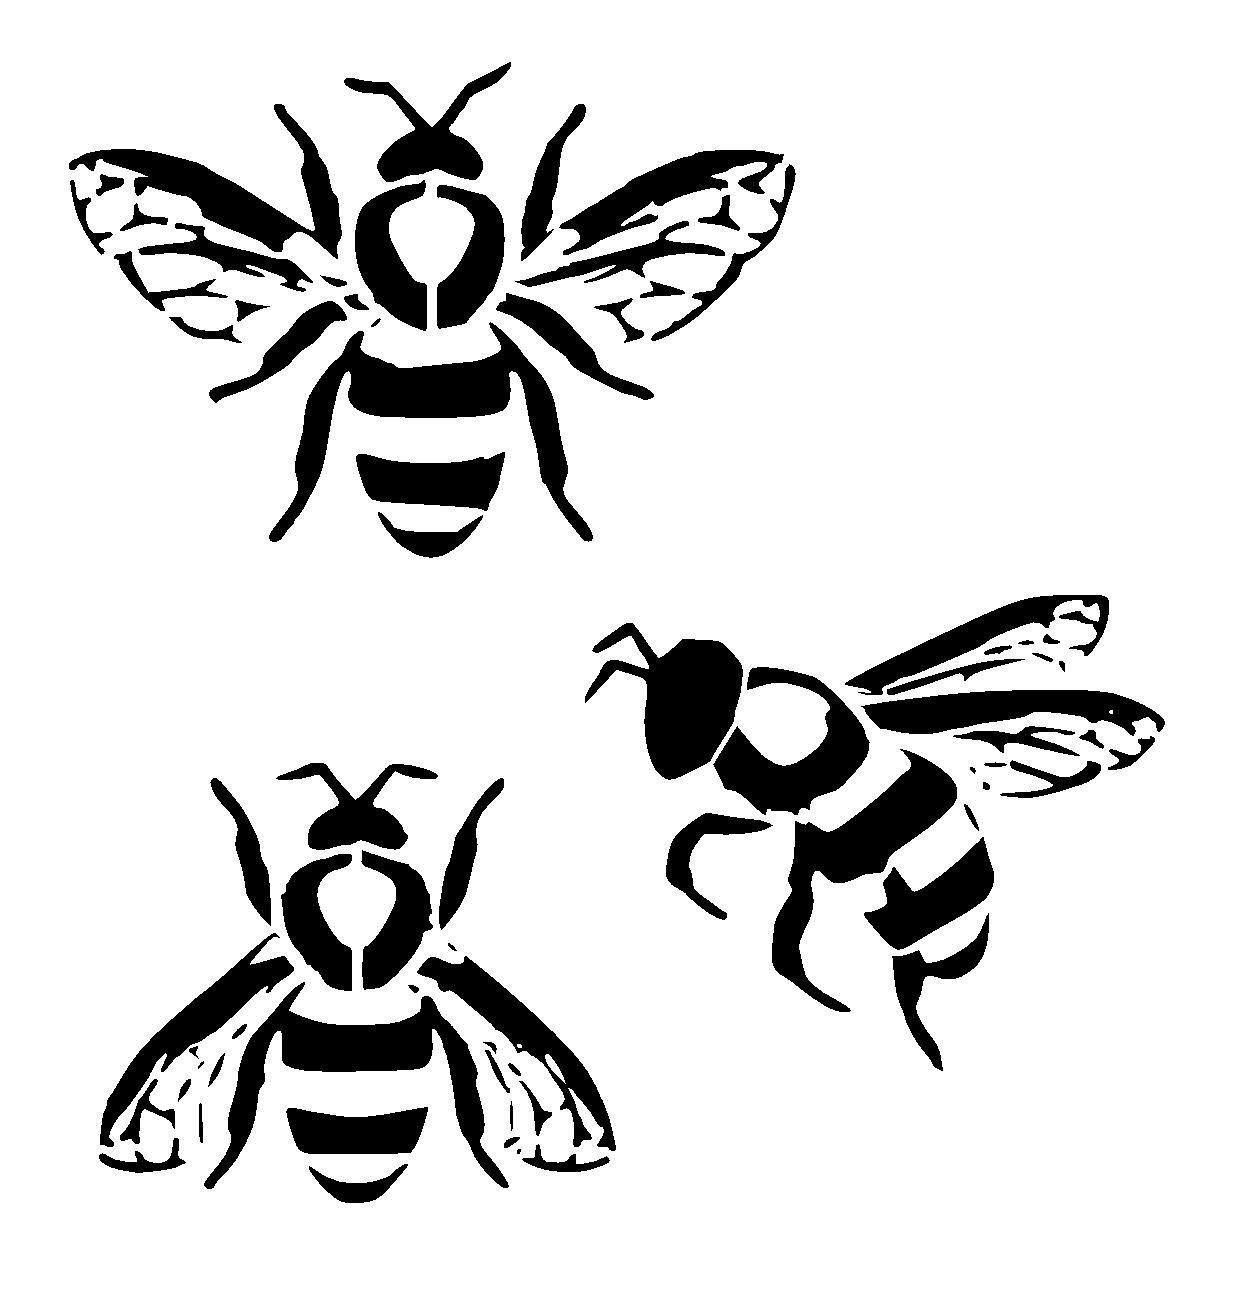 Realistic Bee Drawings Clip Art Black And White Designs Free Easy.